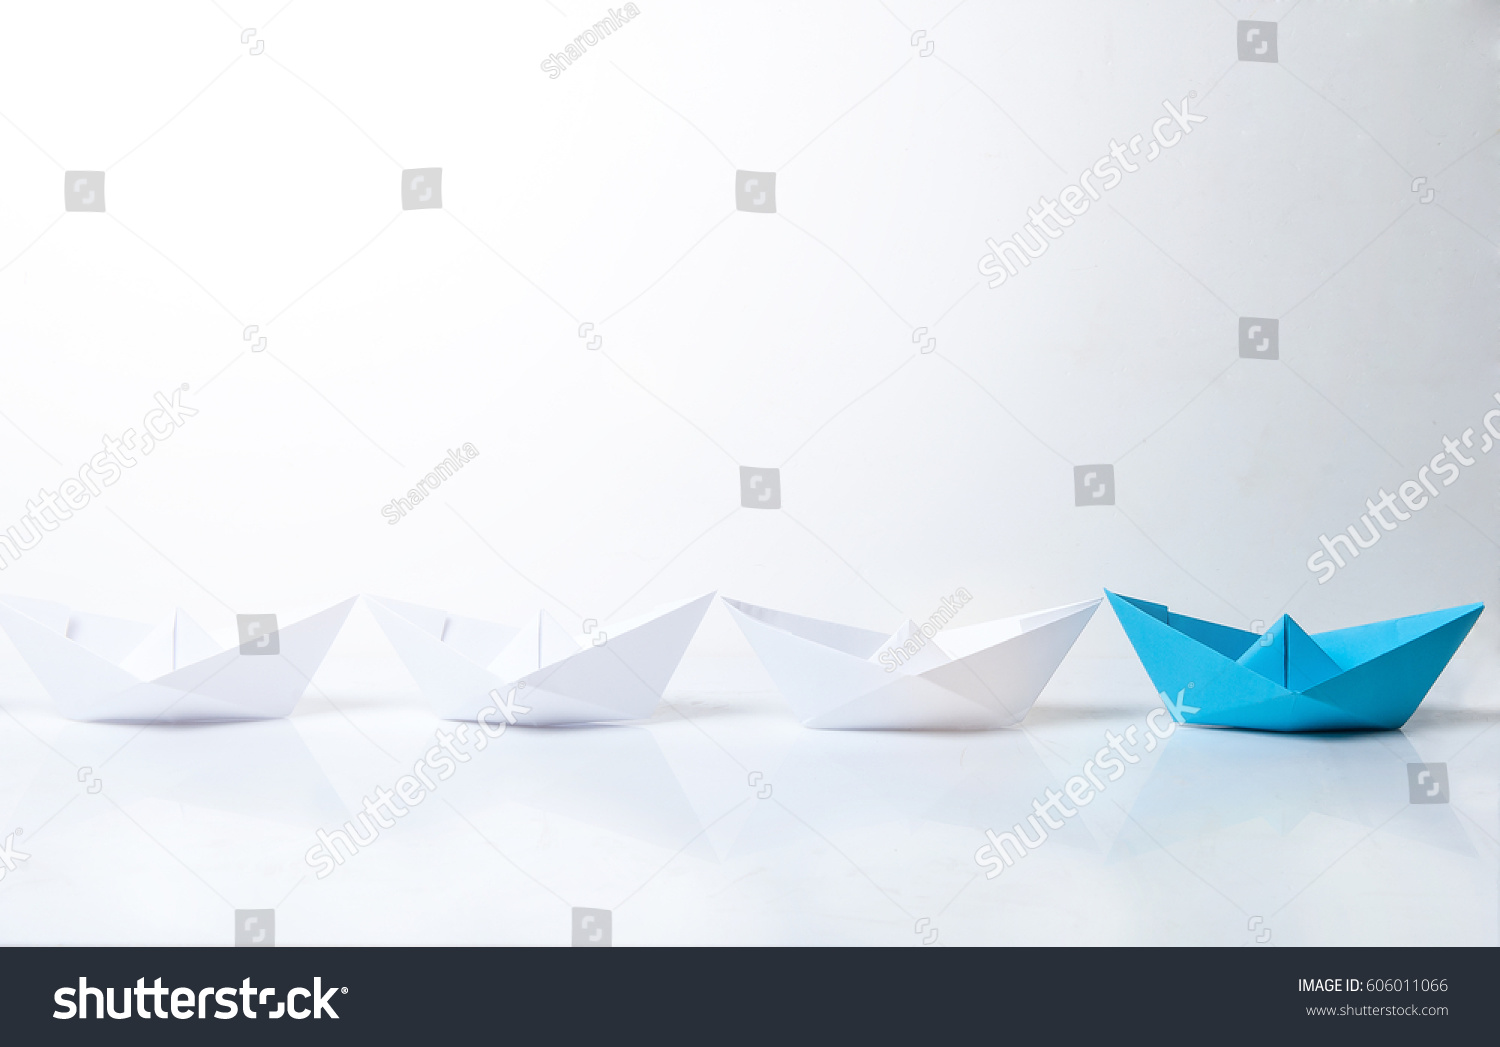 Leadership concept. Blue paper boat leading among white ships. Set of origami boats. Winner red paper ship on white background #606011066